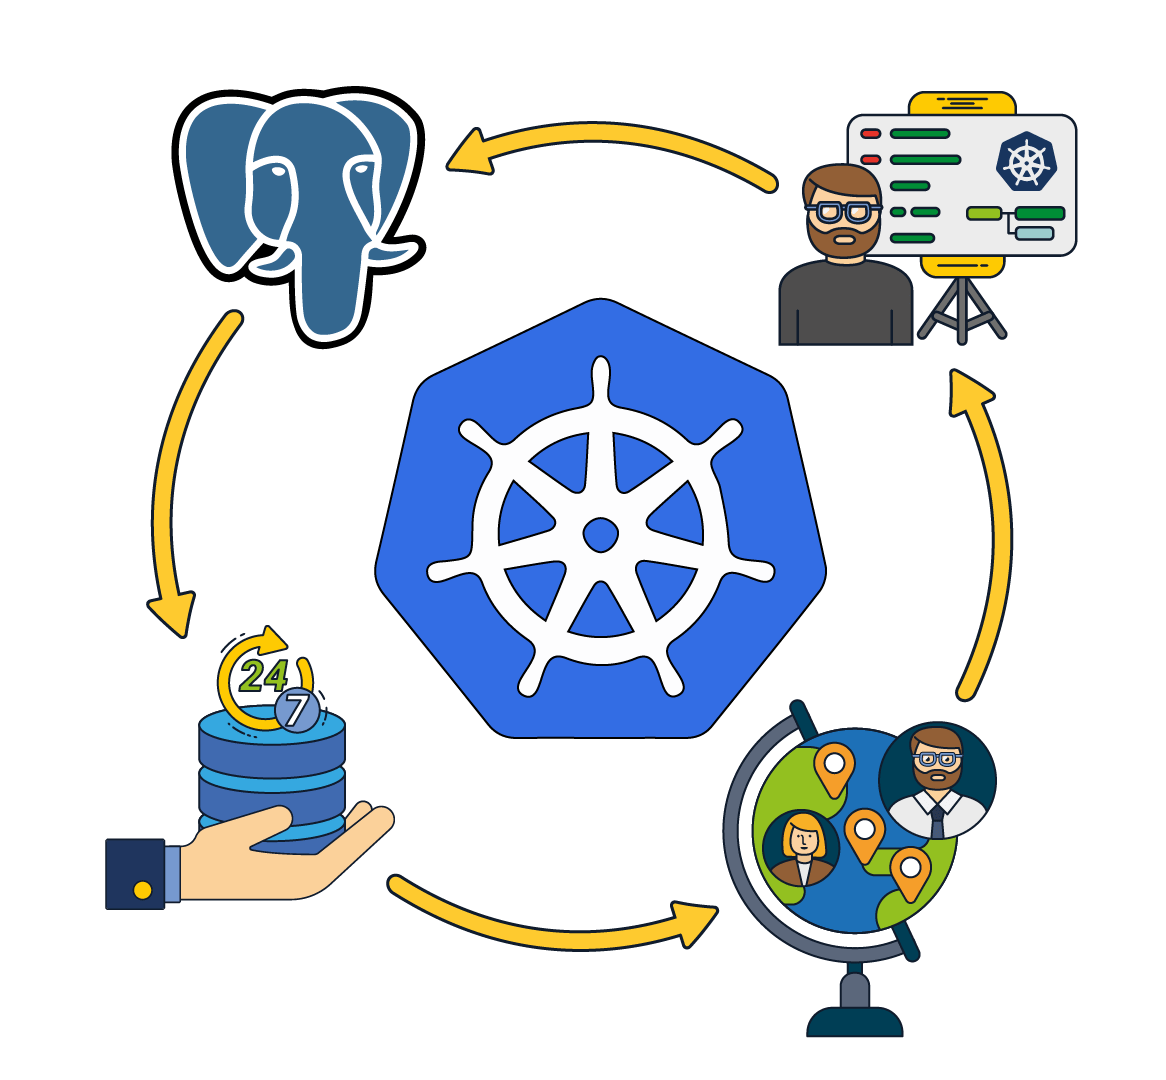 2ndQuadrant offers self-healing Operators for PostgreSQL and BDR, perfect for enterprises looking to go Cloud Native with Kubernetes. These Kubernetes Operators are high in performance, easy to setup, secure, and come with 24/7 support for production deployments.